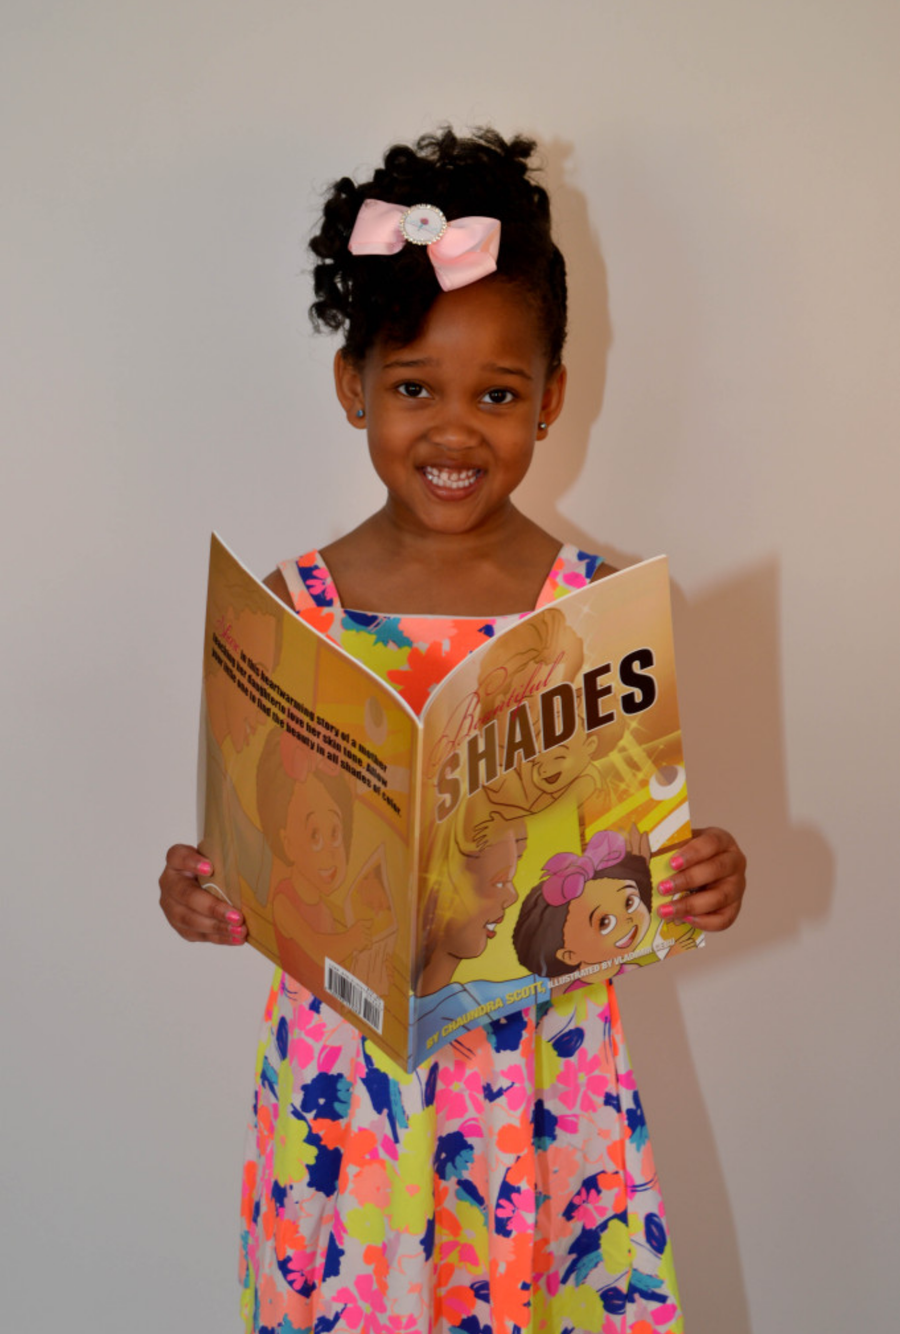 Image of Beautiful Shades Children's Book